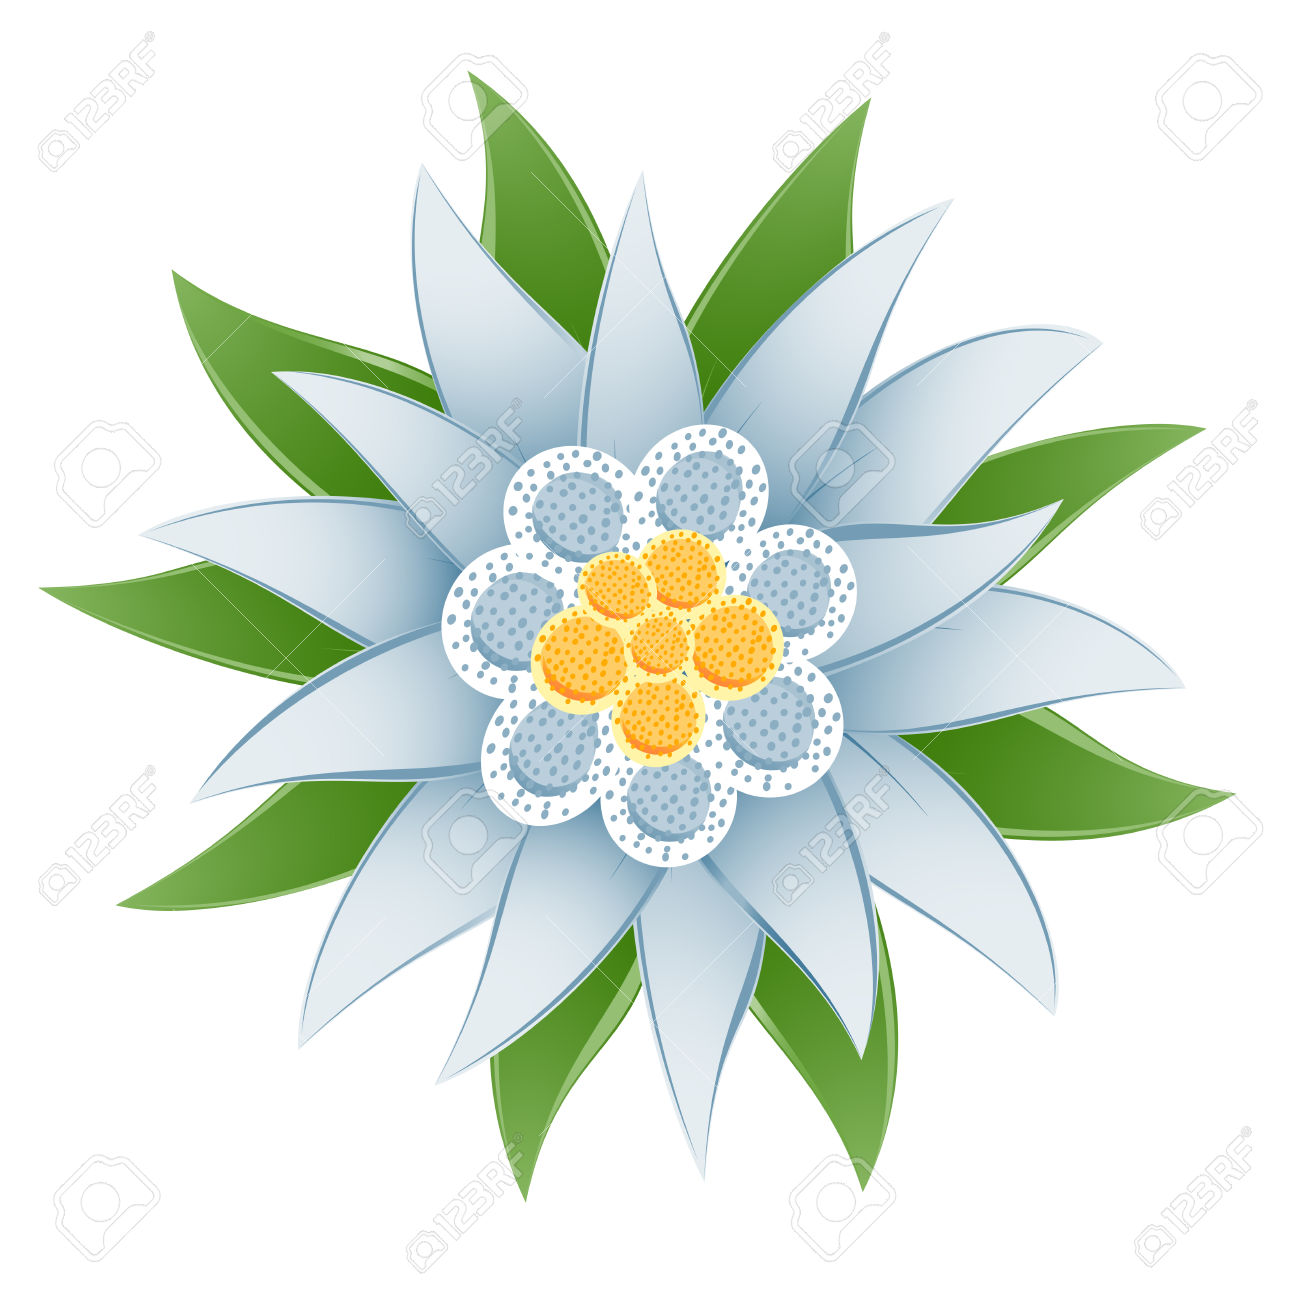 Edelweiss (Leontopodium Alpinum) Flower Royalty Free Cliparts.